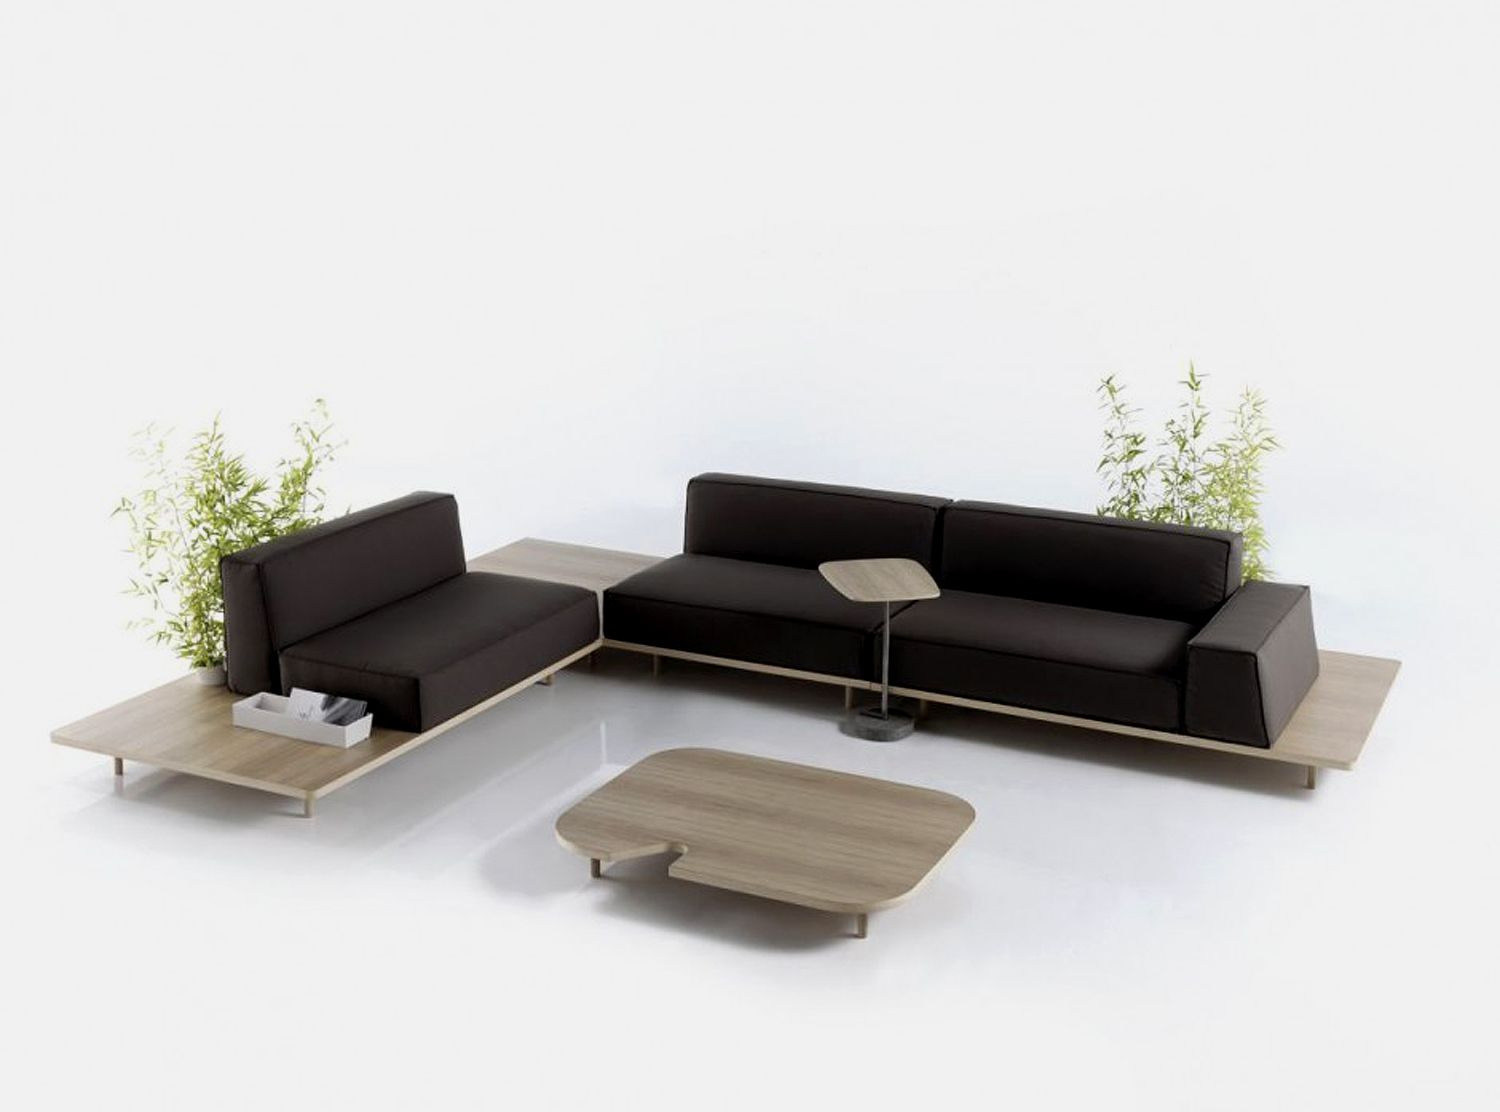 Mobilier Design Contemporain 9 Designer Couch, Living Furniture, Sofa  Furniture, Furniture Design,